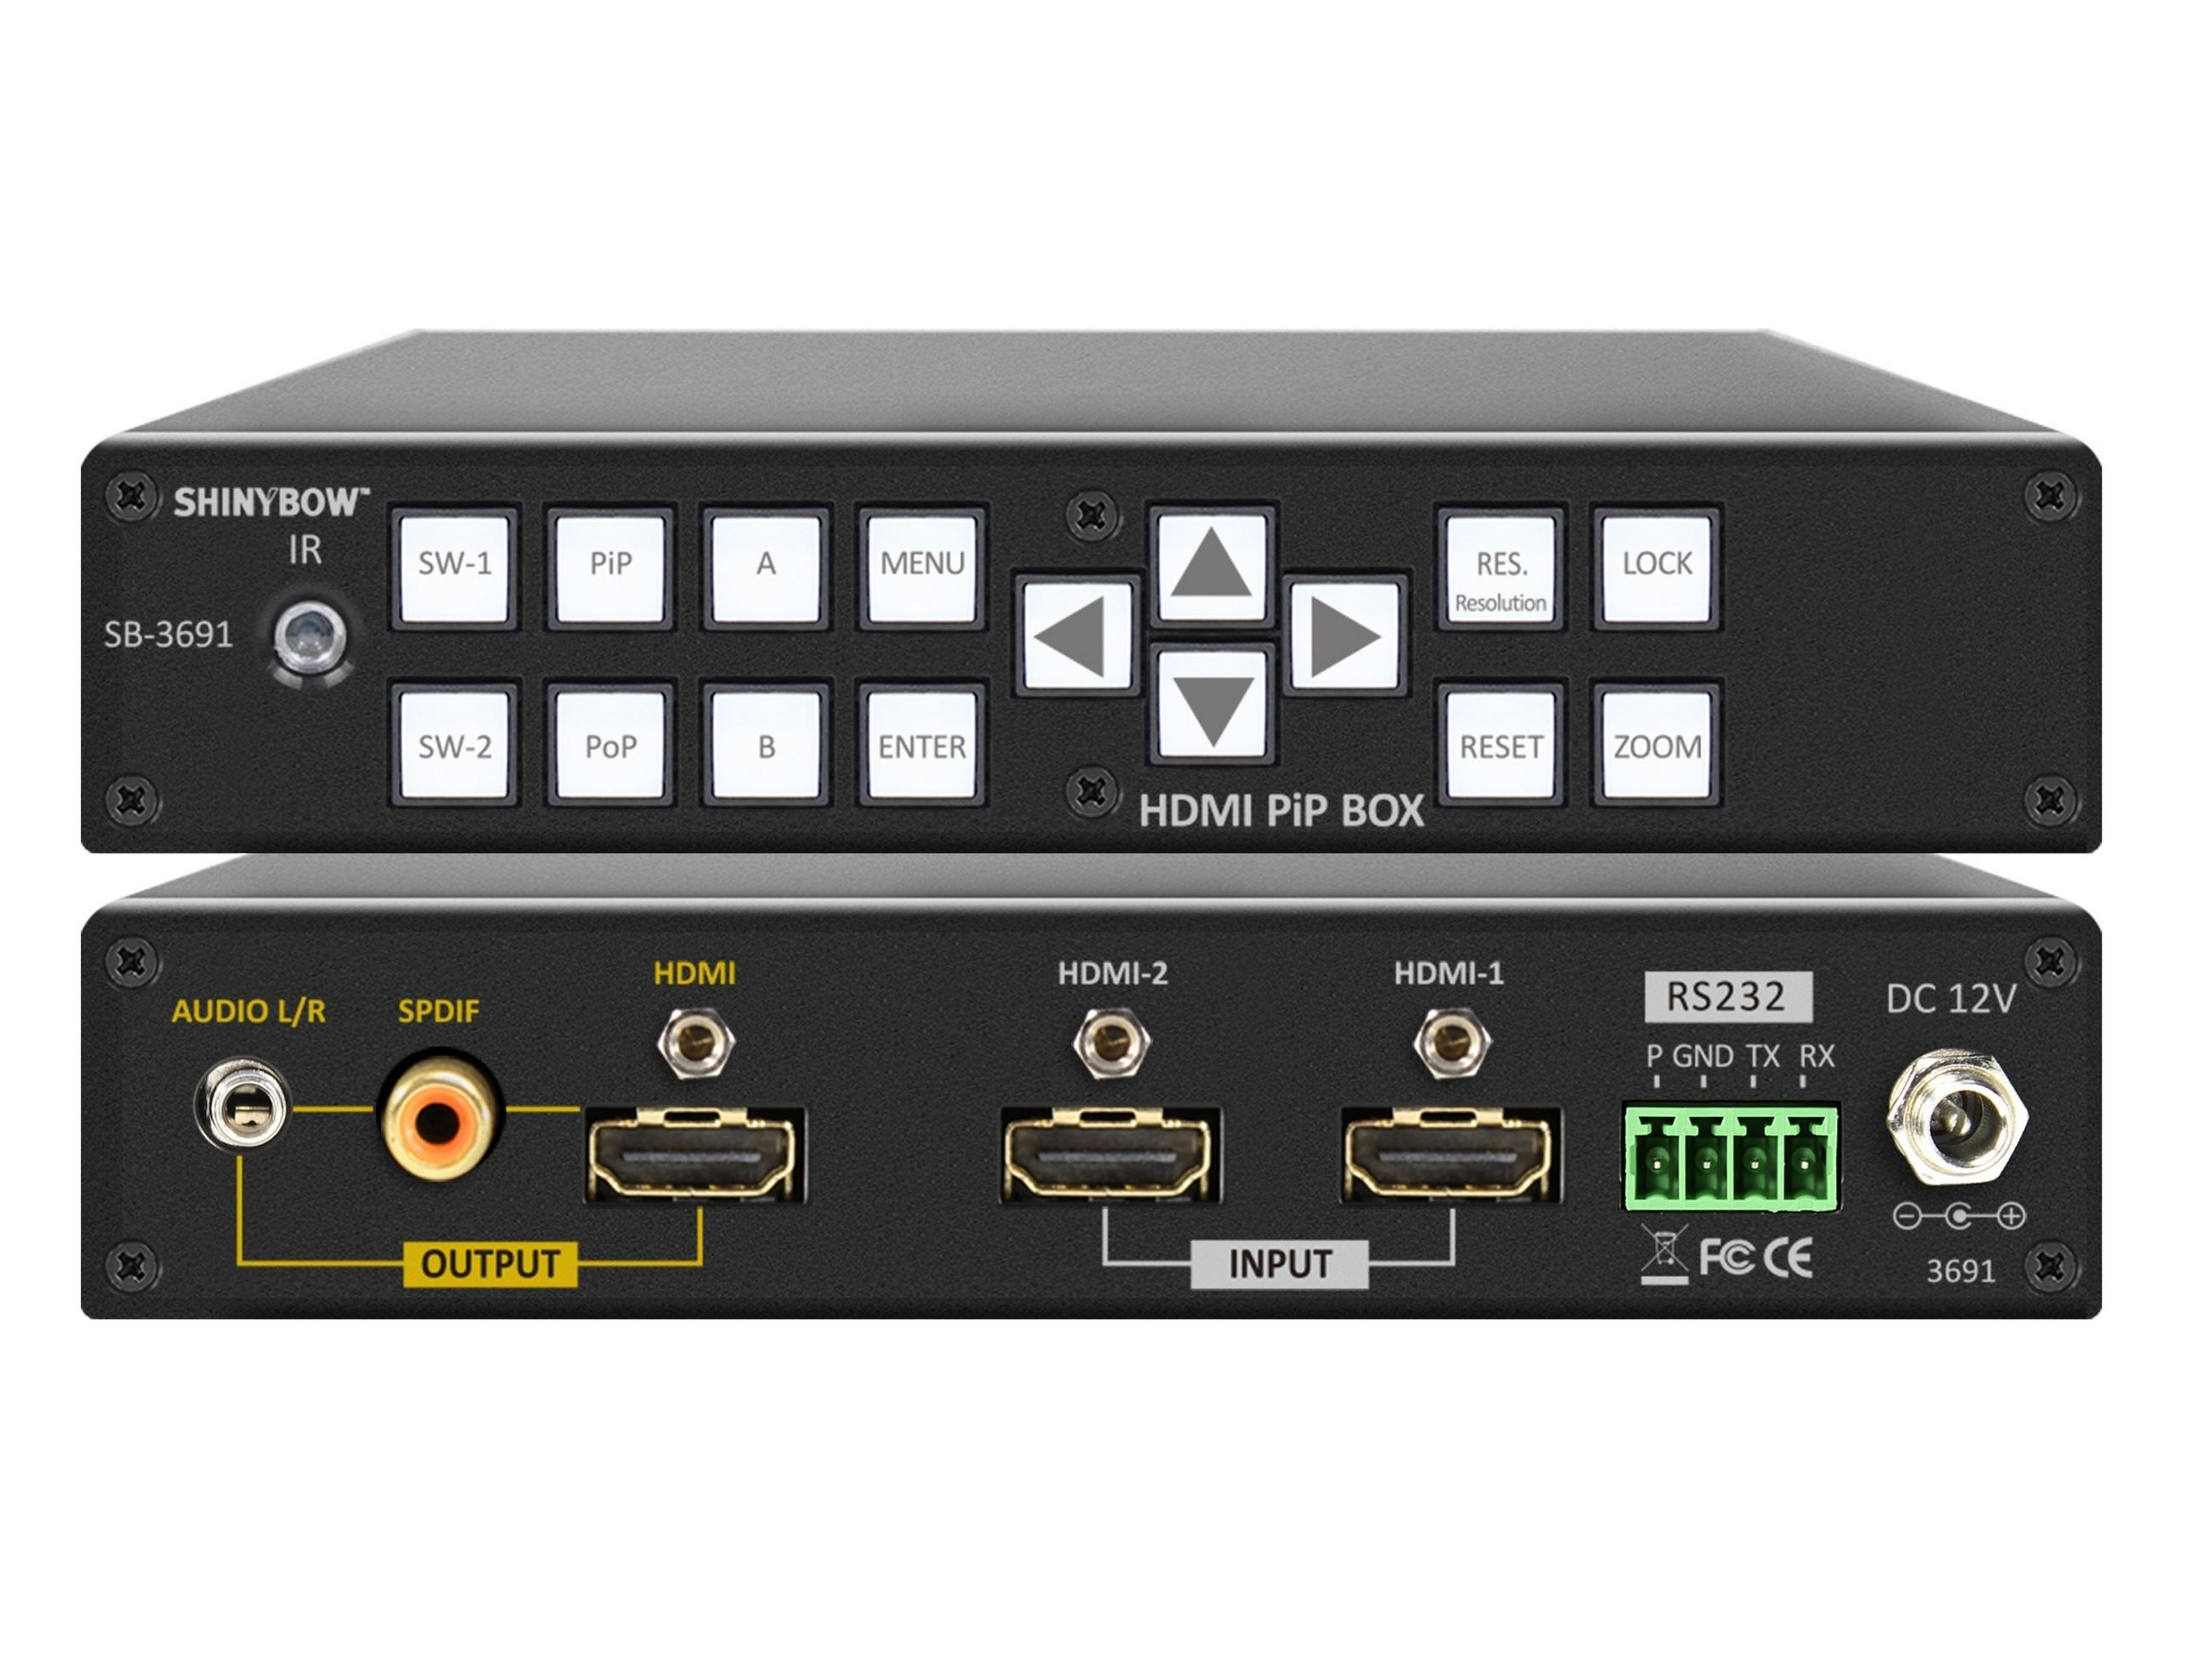 SB-3691 2x1 HDMI PiP/PoP Selector Switch Scaler by Shinybow